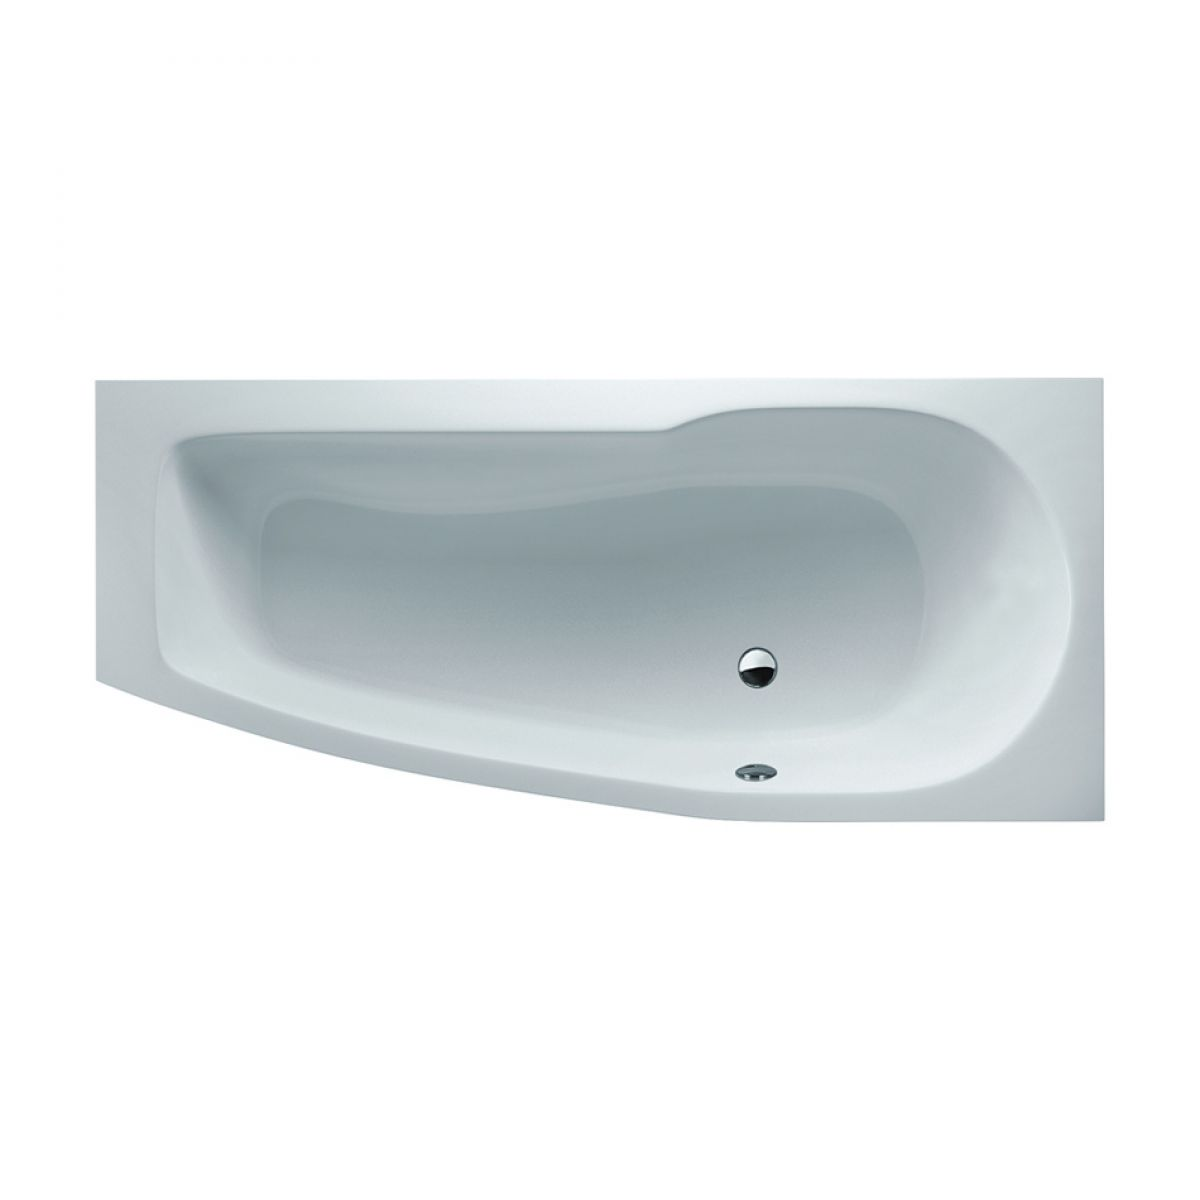 ClearGreen Ecocurve Contemporary Shower Bath : UK Bathrooms